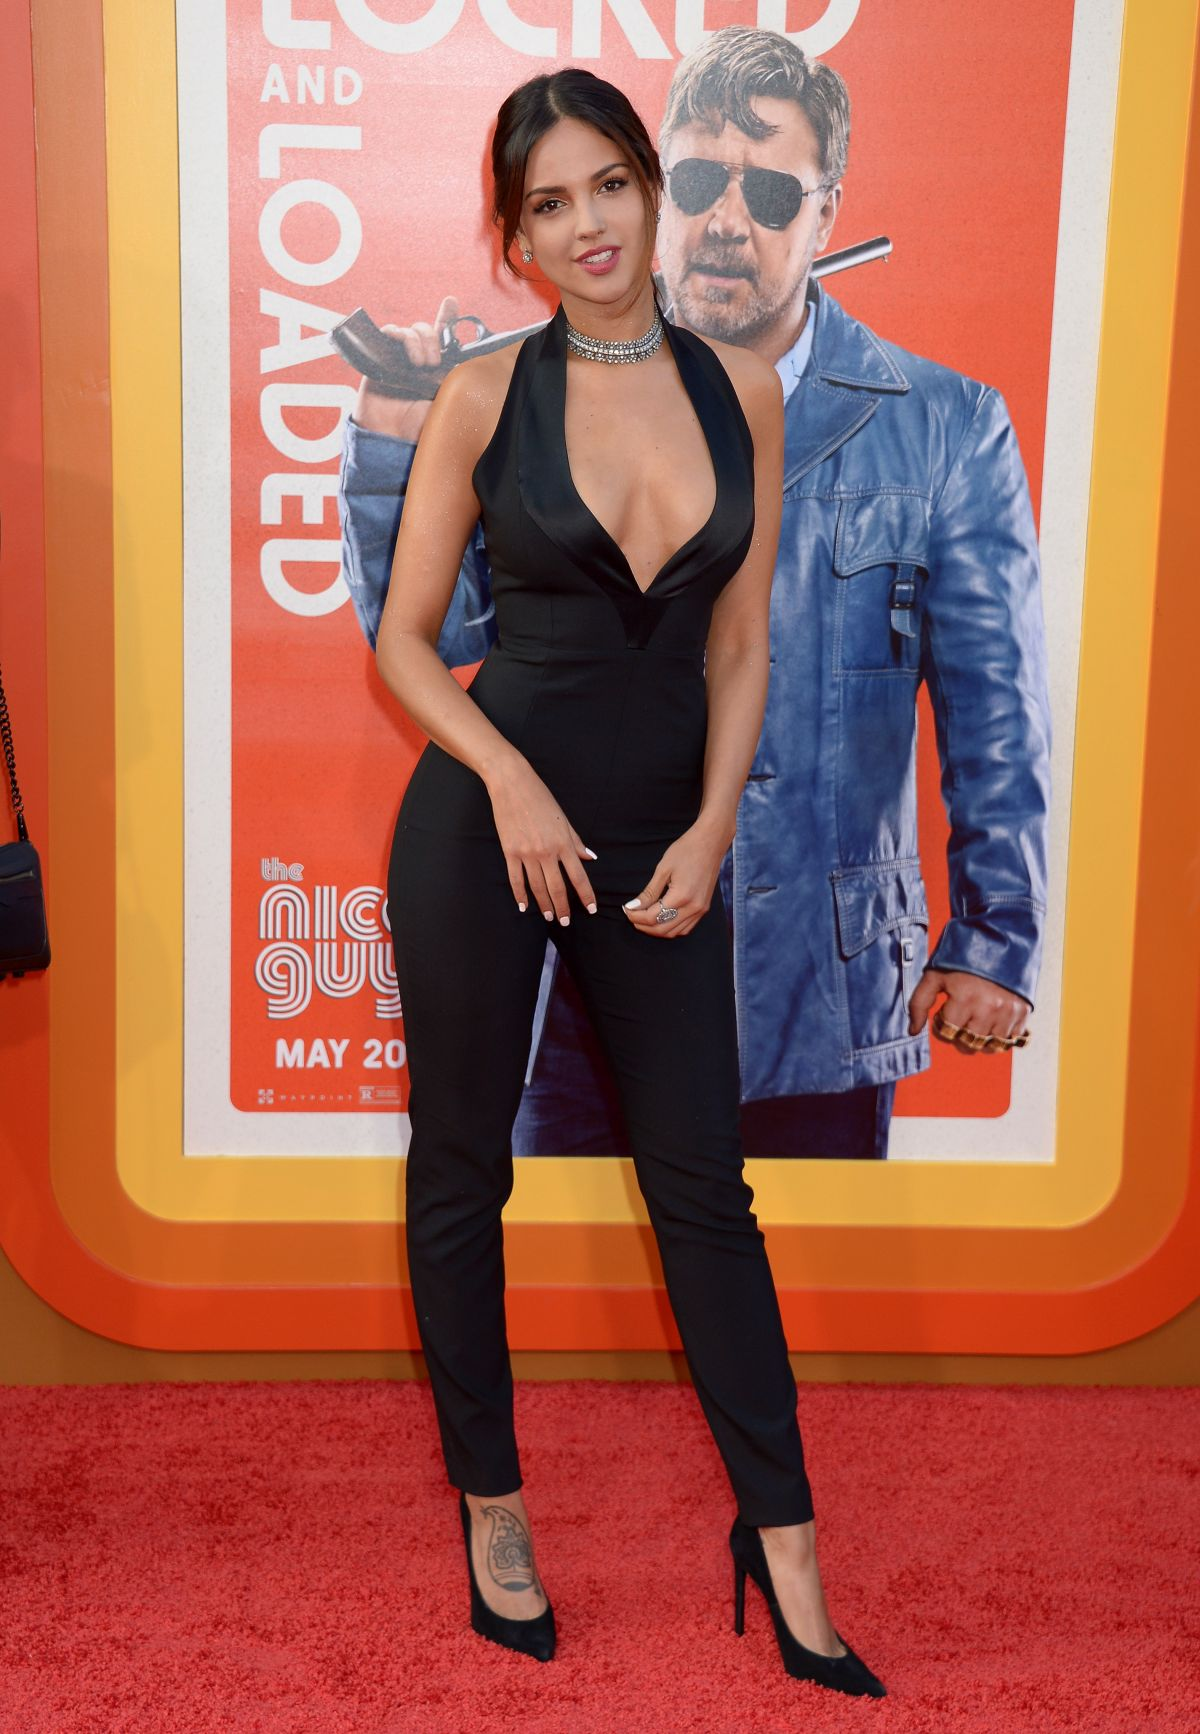 ¿Cuánto mide Eiza González? - Real height Eiza-gonzalez-at-the-nice-guys-premiere-in-hollywood-05-10-2016-draft_7